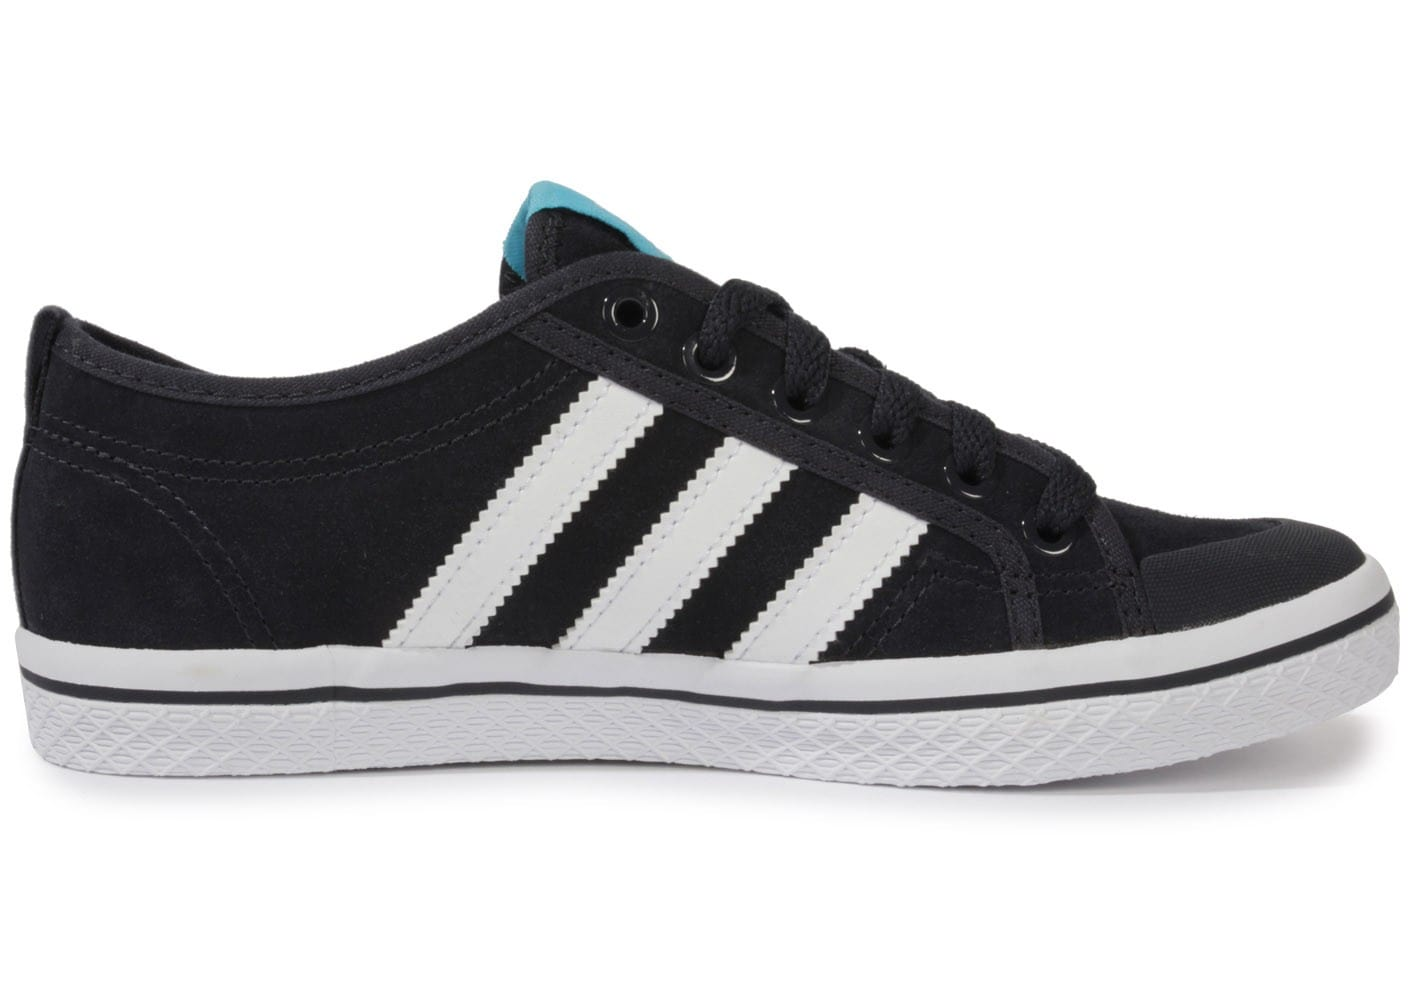 adidas Chausport Honey Low Chaussures Bleue adidas dCBoex